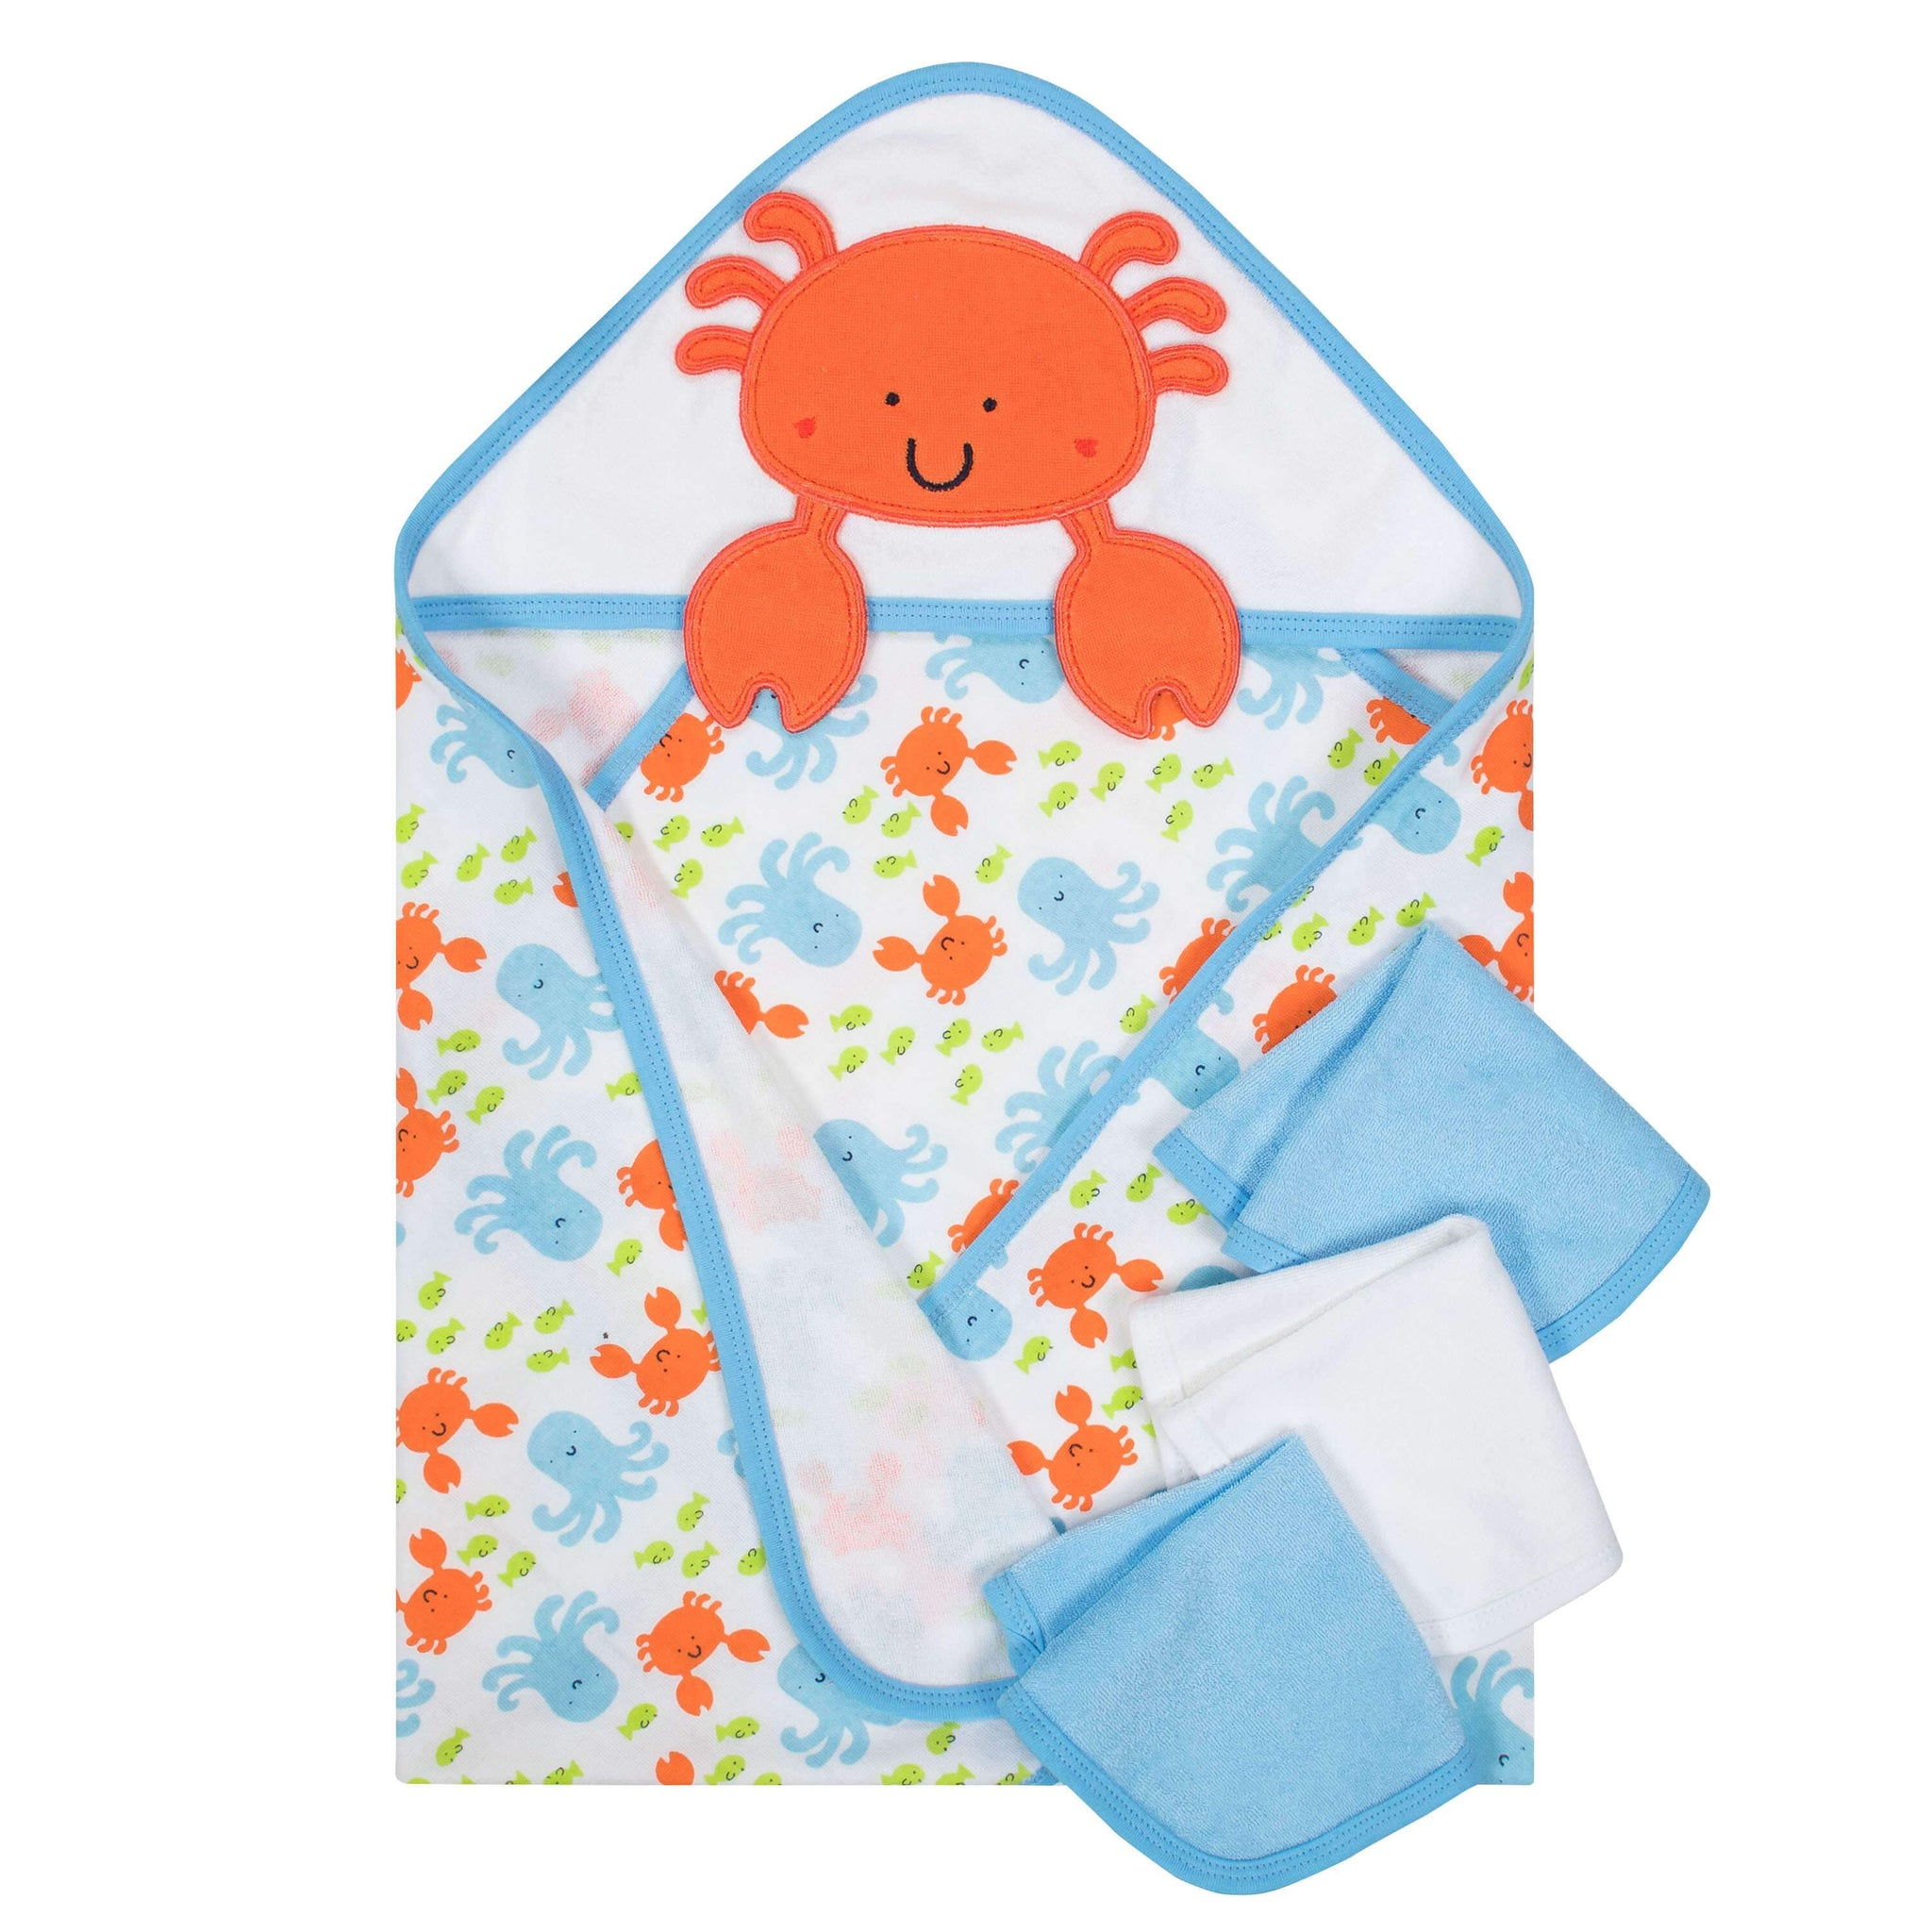 Crab Hooded Towel and Washcloths